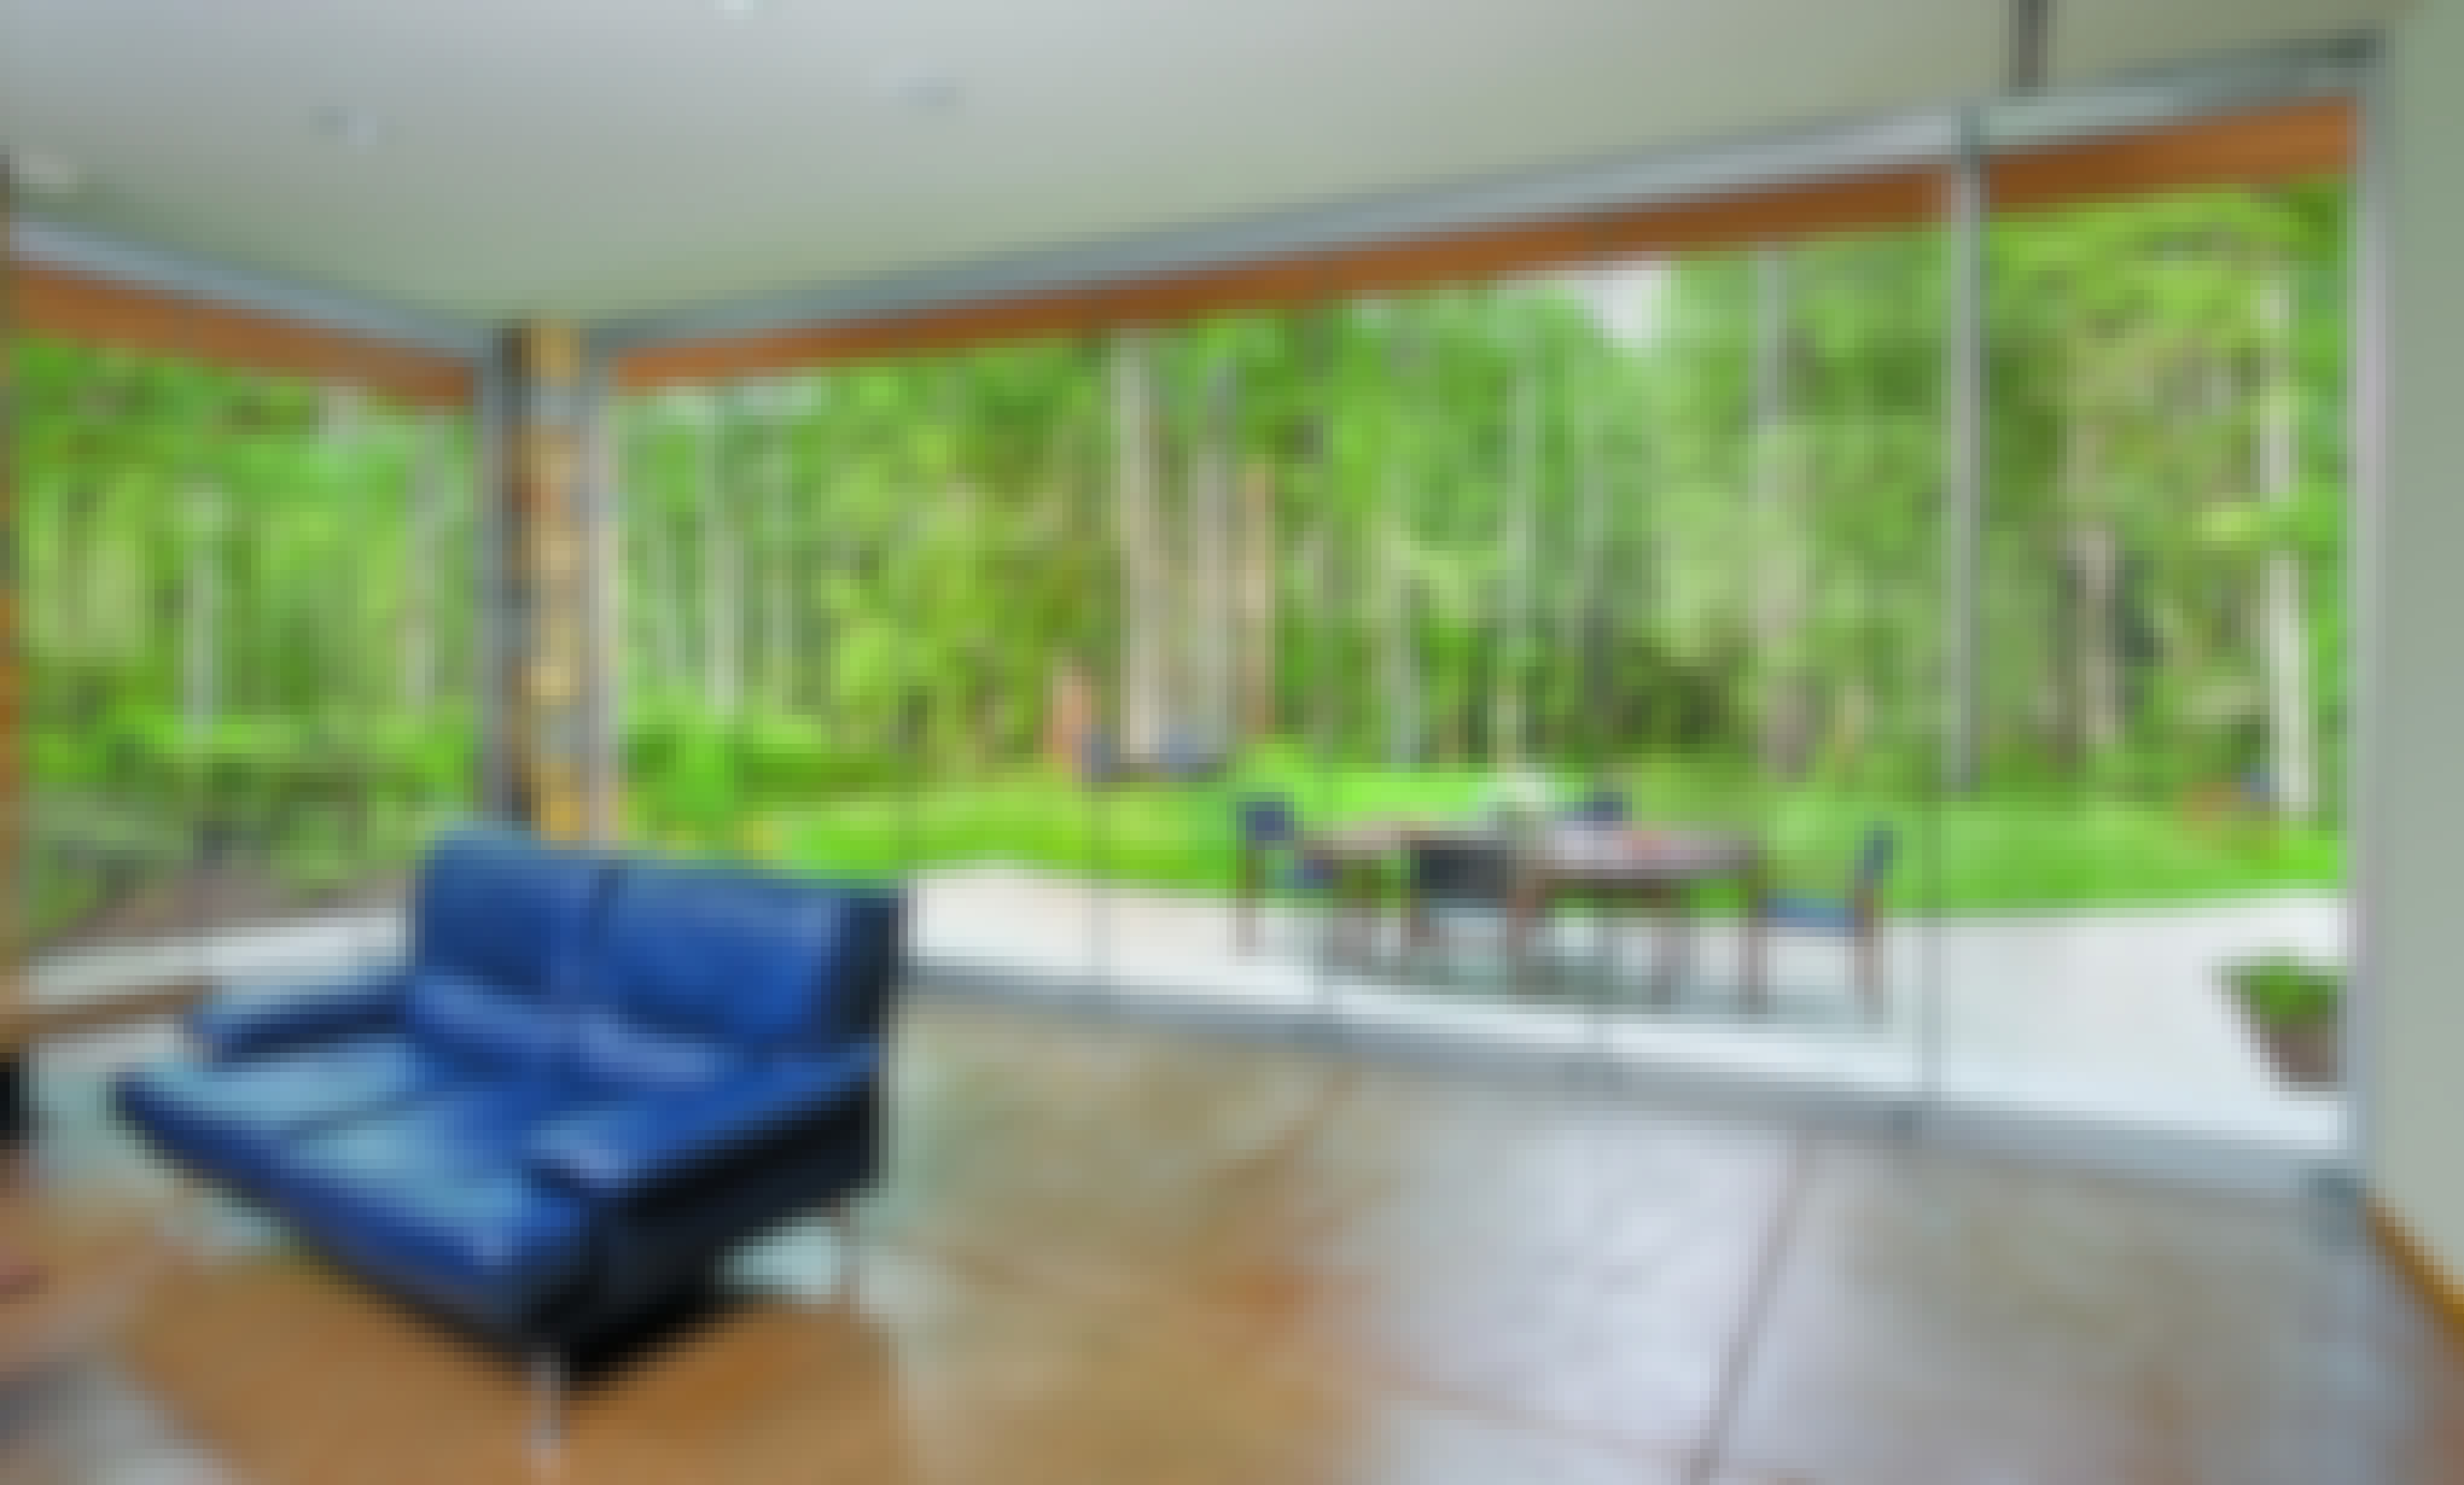 ClimaCLEAR frameless glass walls enclose an indoor/outdoor living space